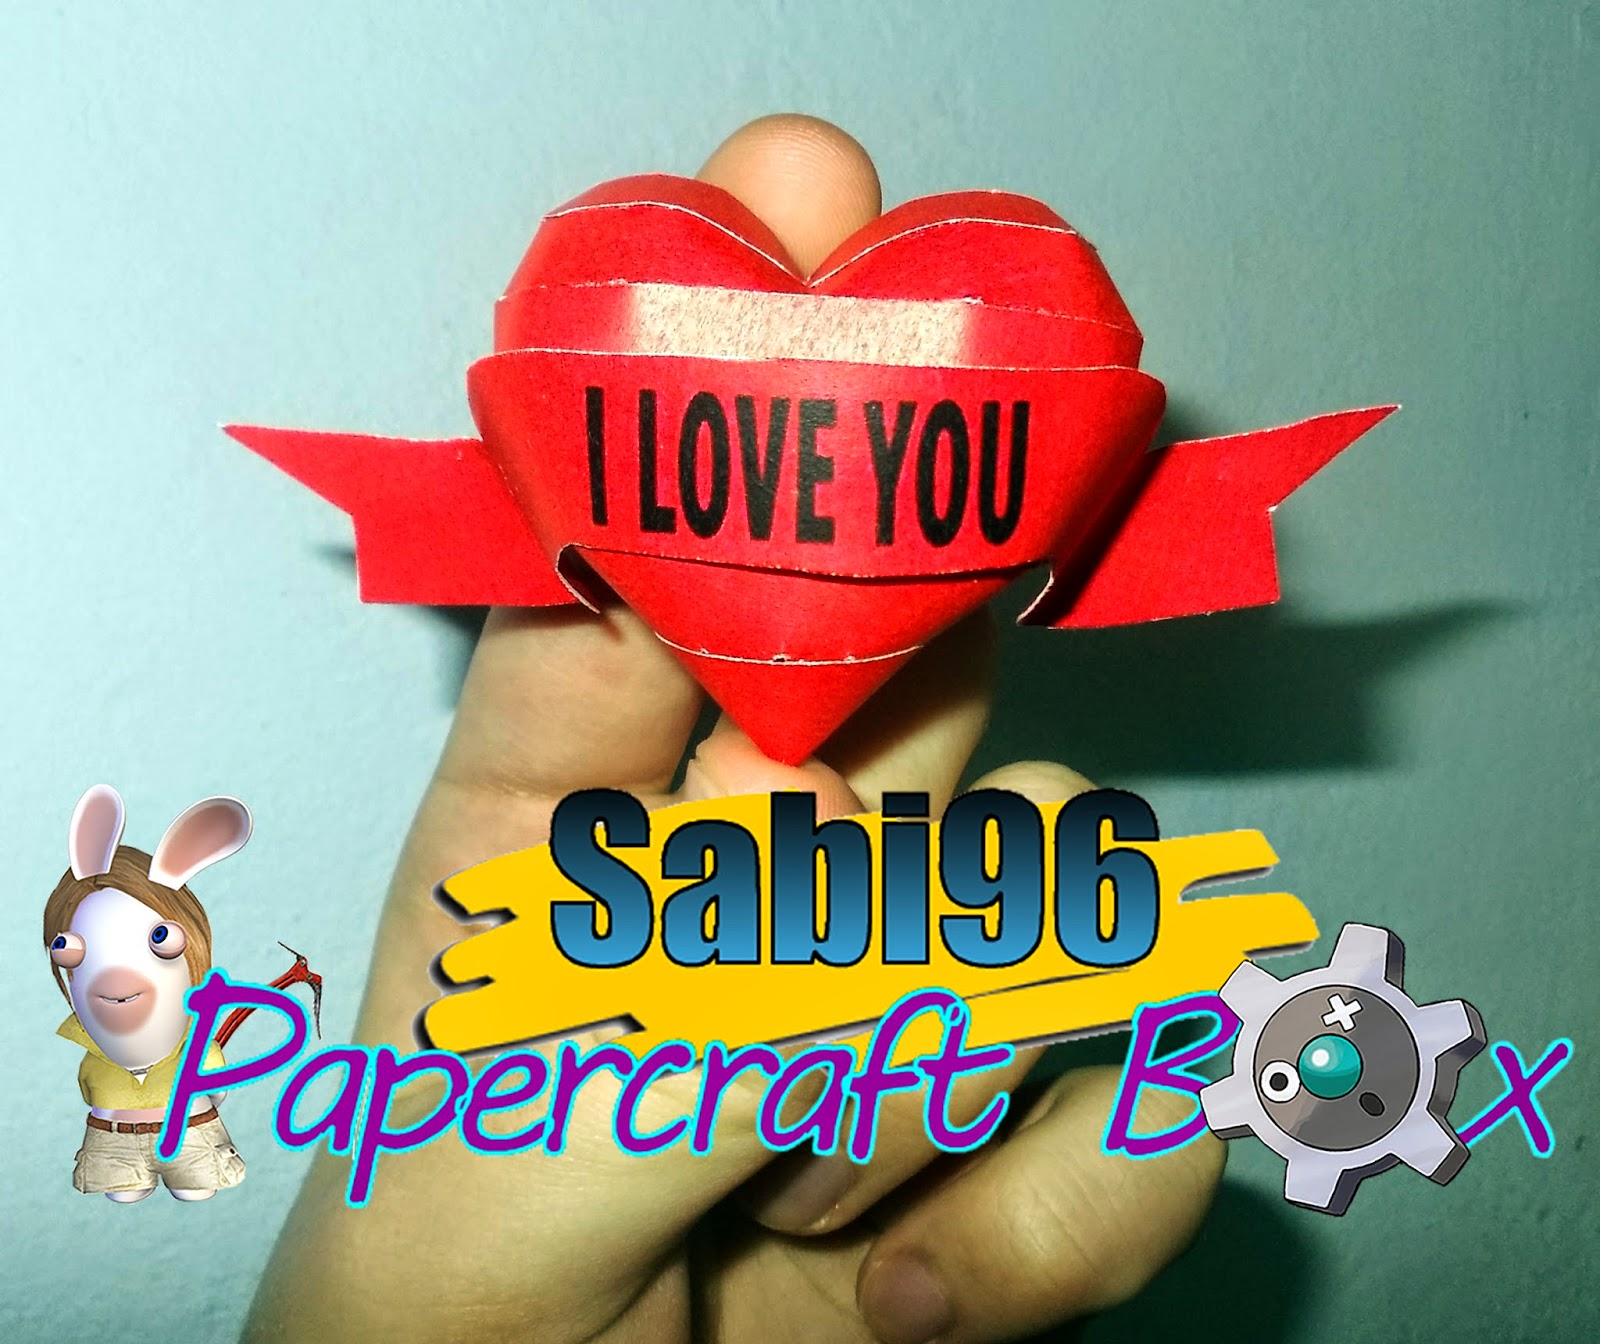 Valentine's Day Heart Papercraft